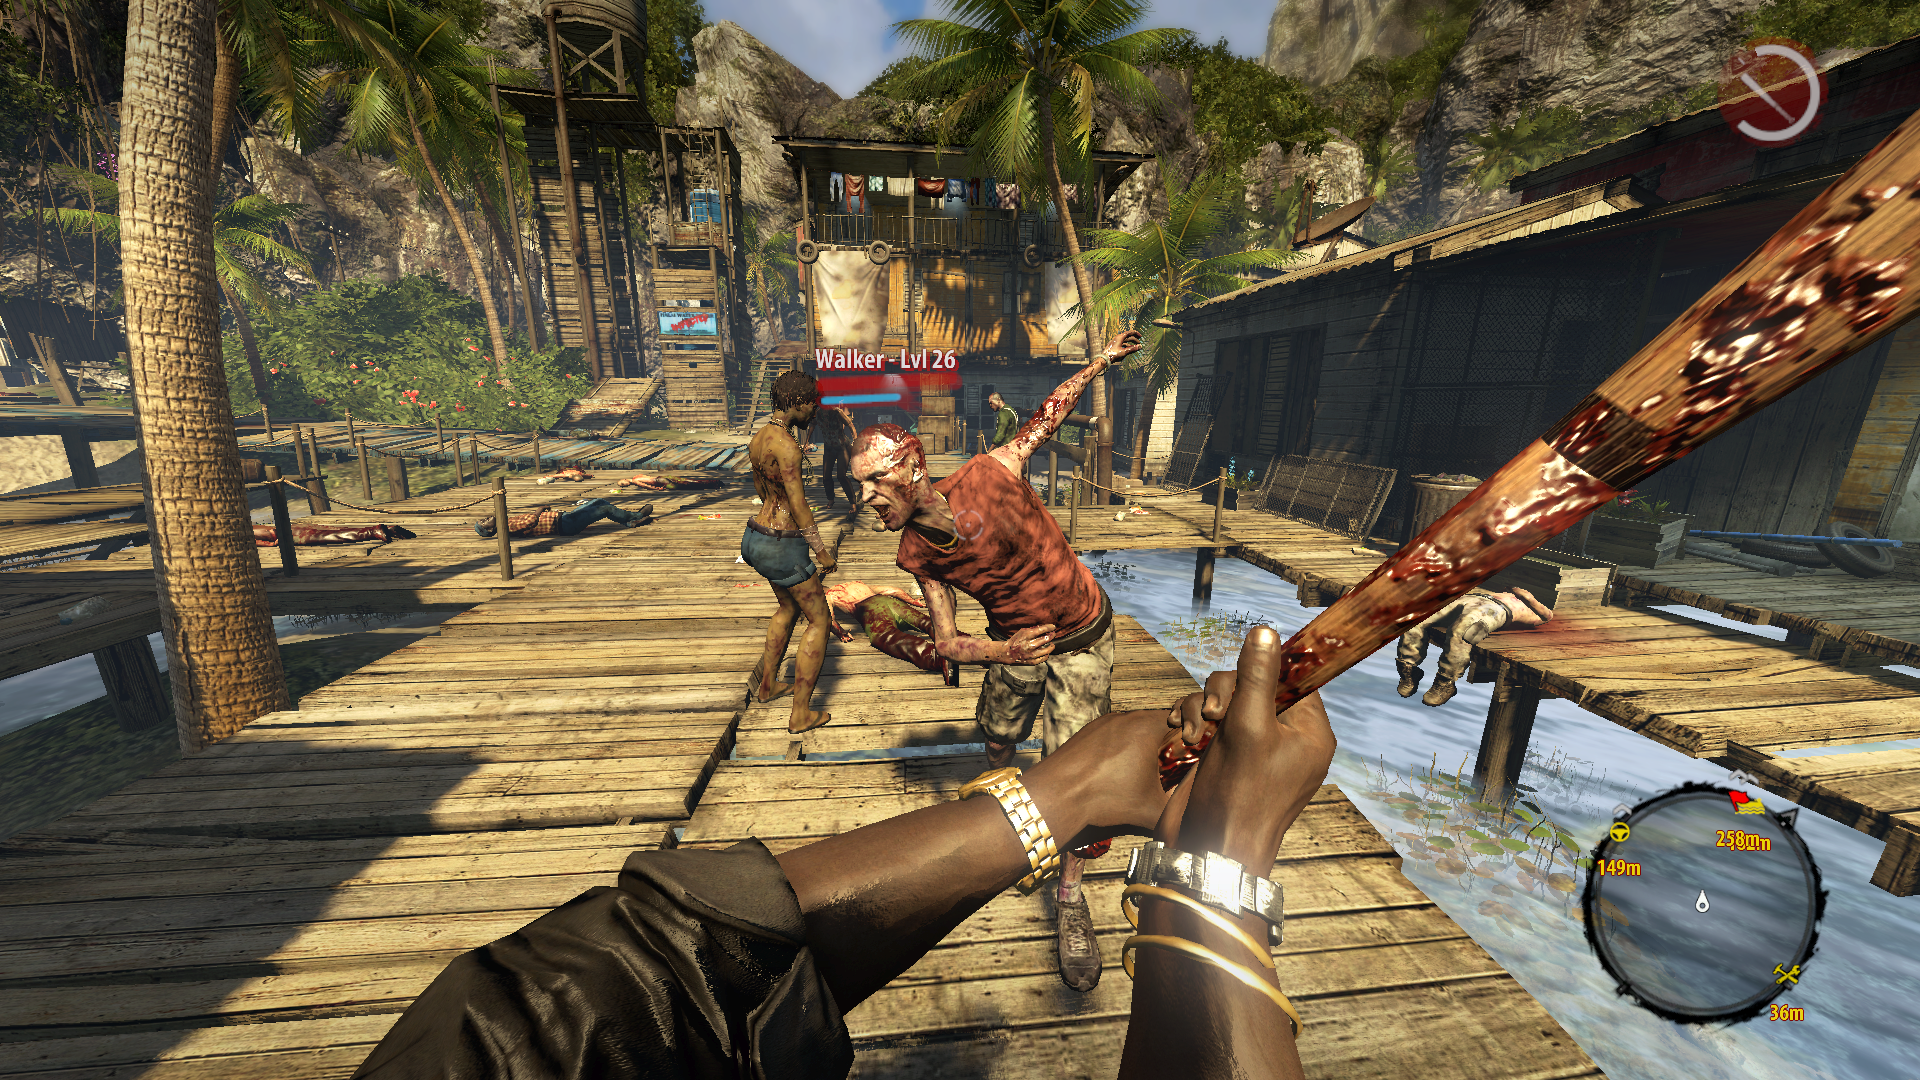 Dead Island Pc Game Downloadclevervia